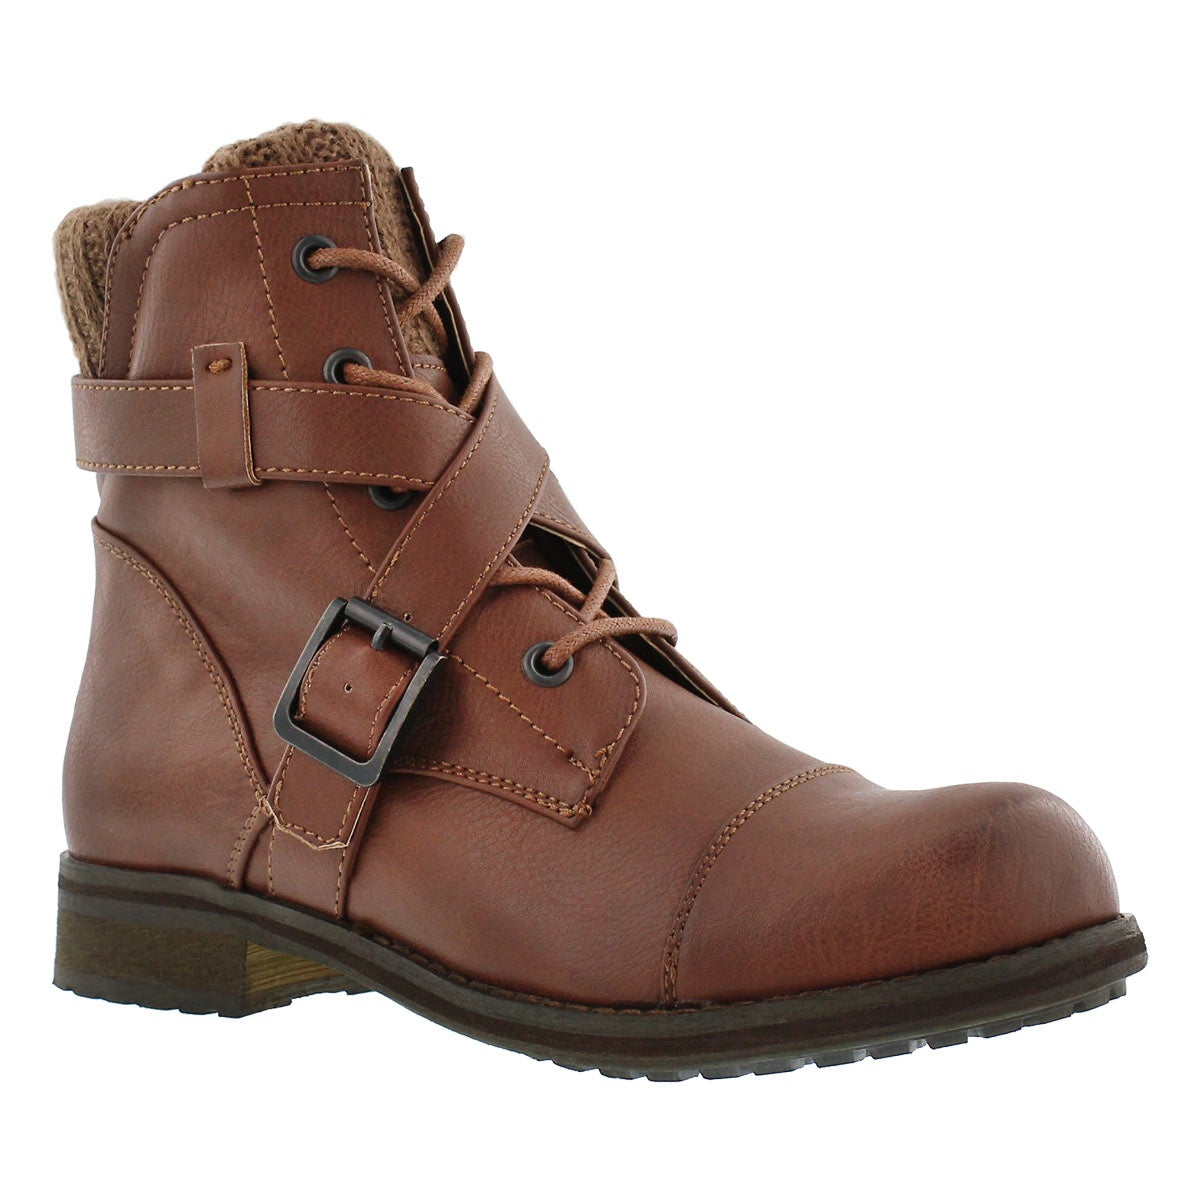 Women's BINDI cognac casual ankle boots